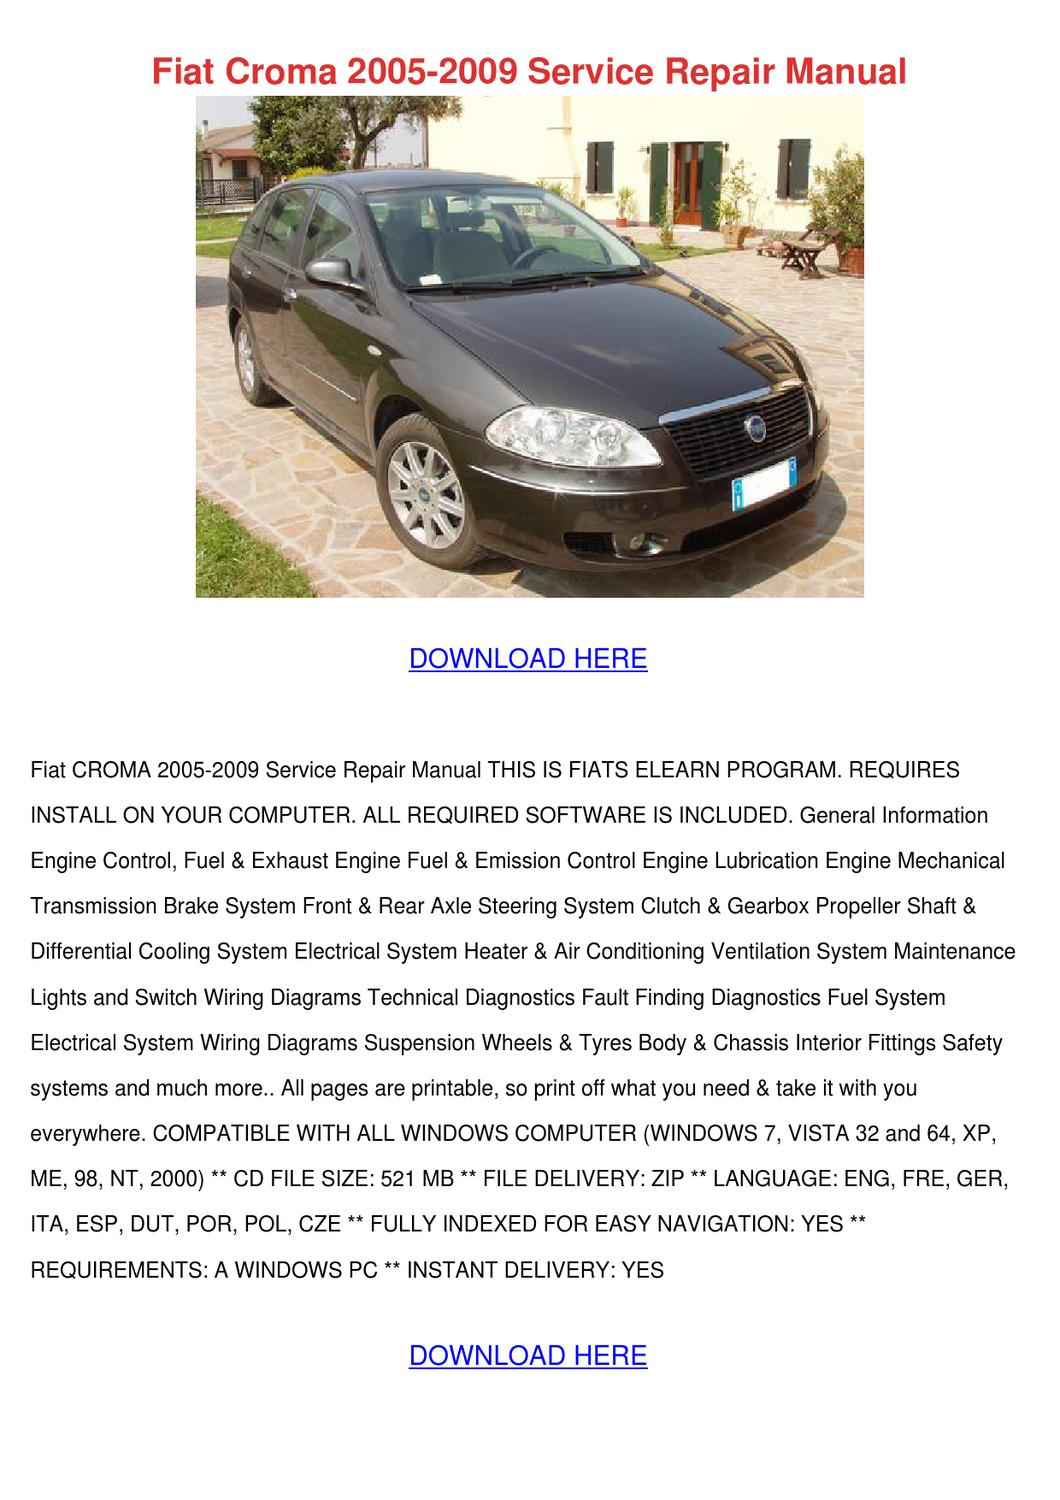 Fiat Croma 2005 2009 Service Repair Manual By Kaihawley